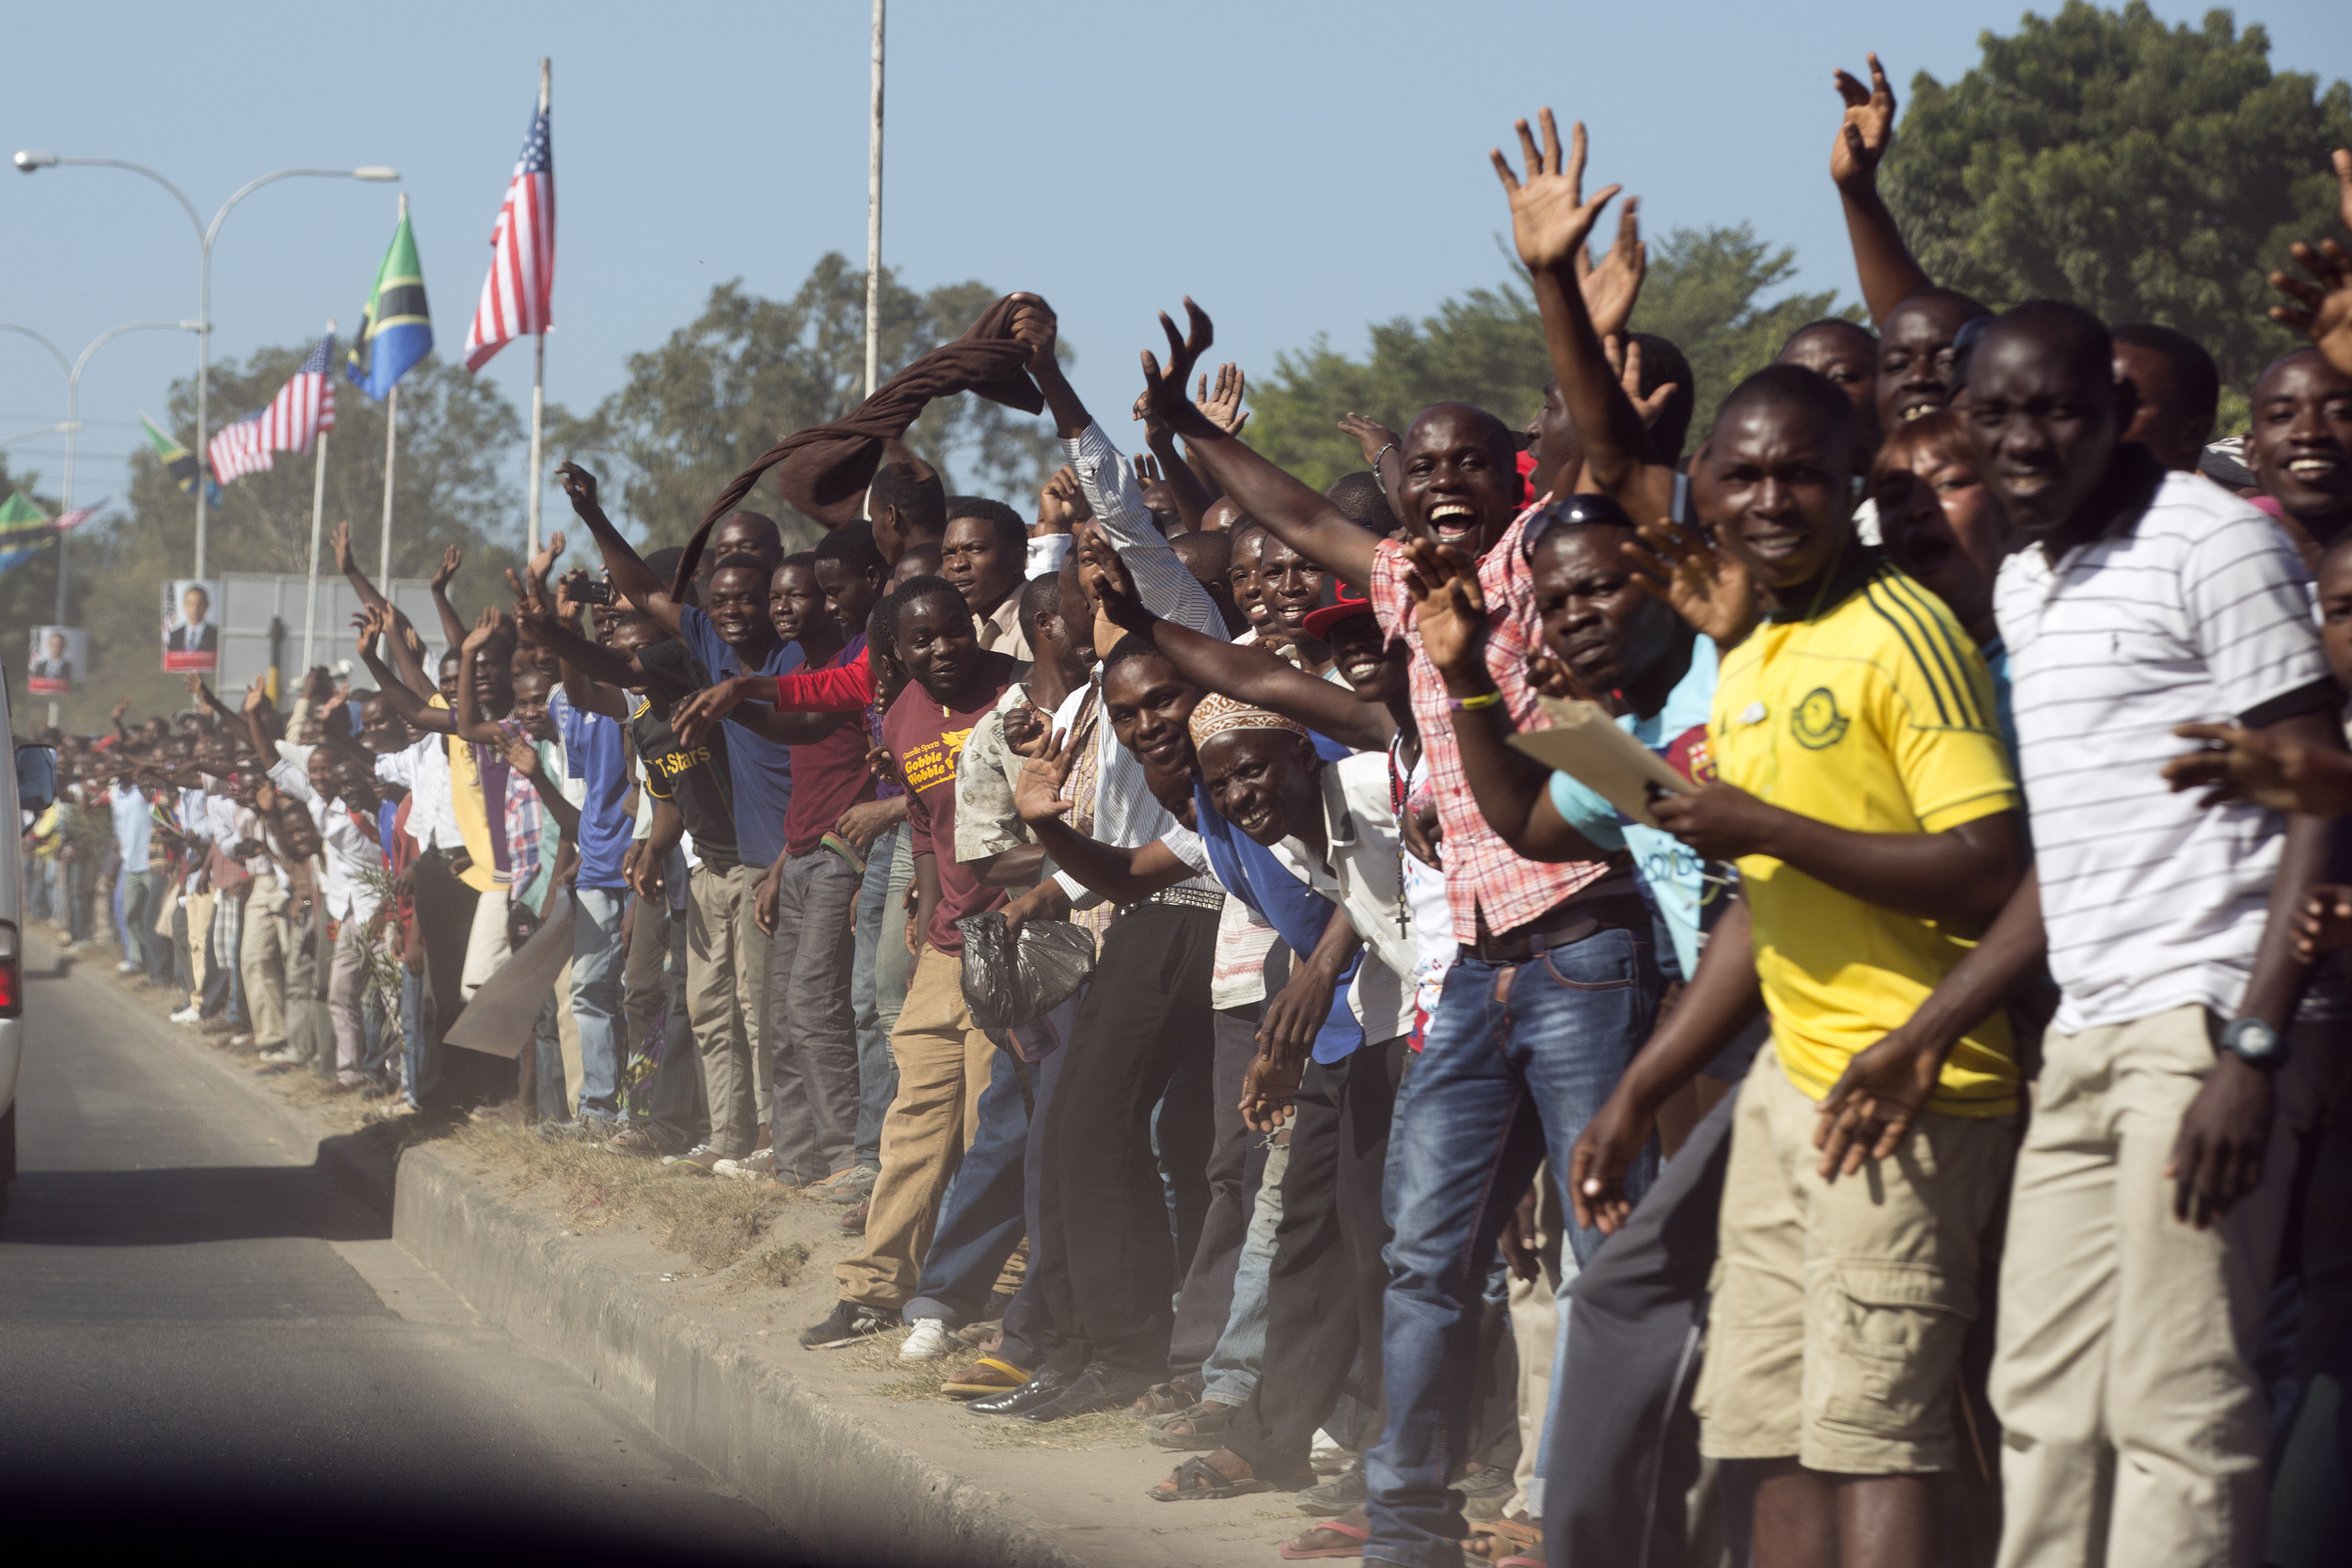 People line the street as President Barack Obama's motorcade travels through Dar es Salaam, Tanzania - 2013.